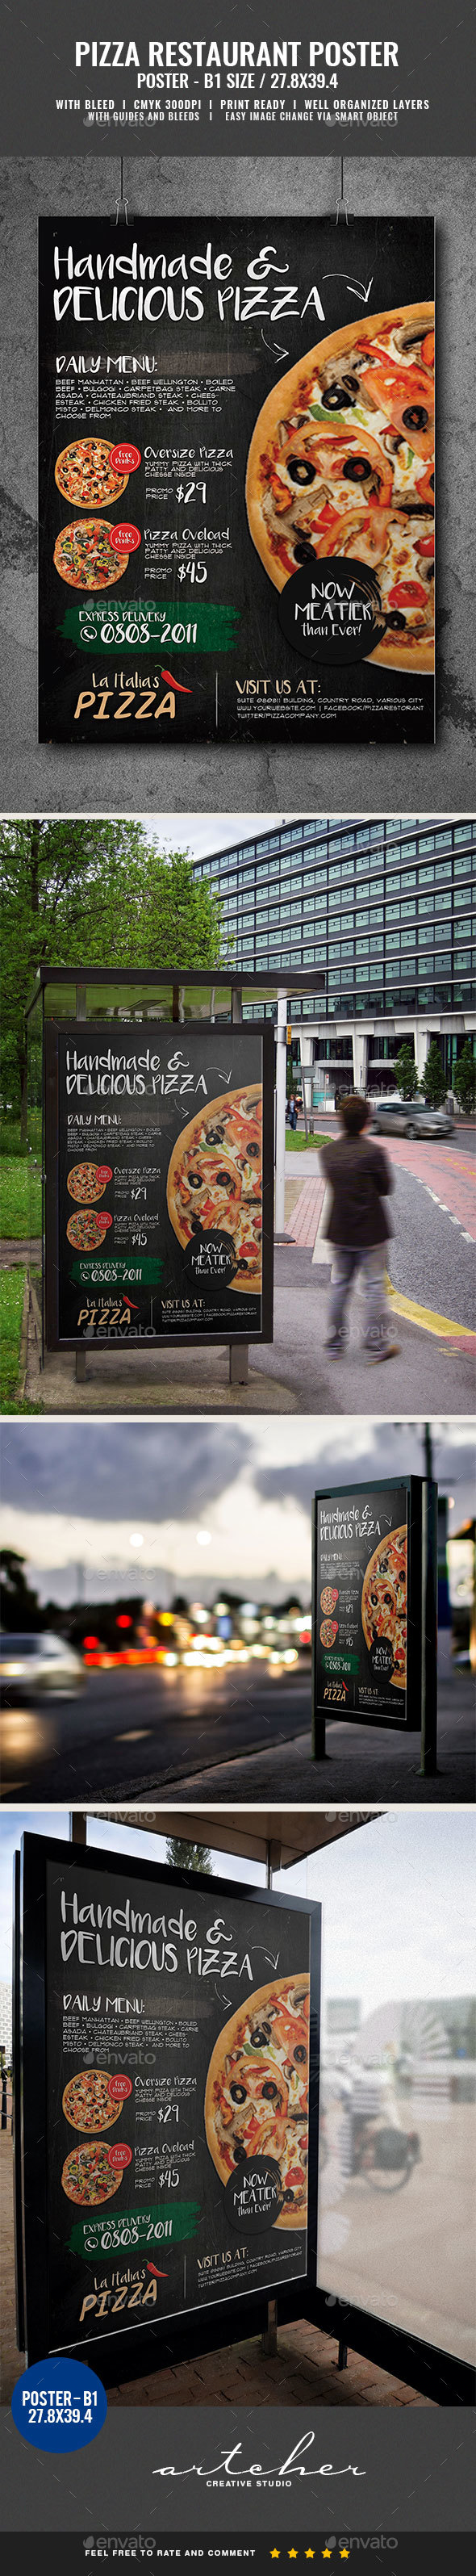 Pizza Burger and Pasta Restaurant Poster - Signage Print Templates